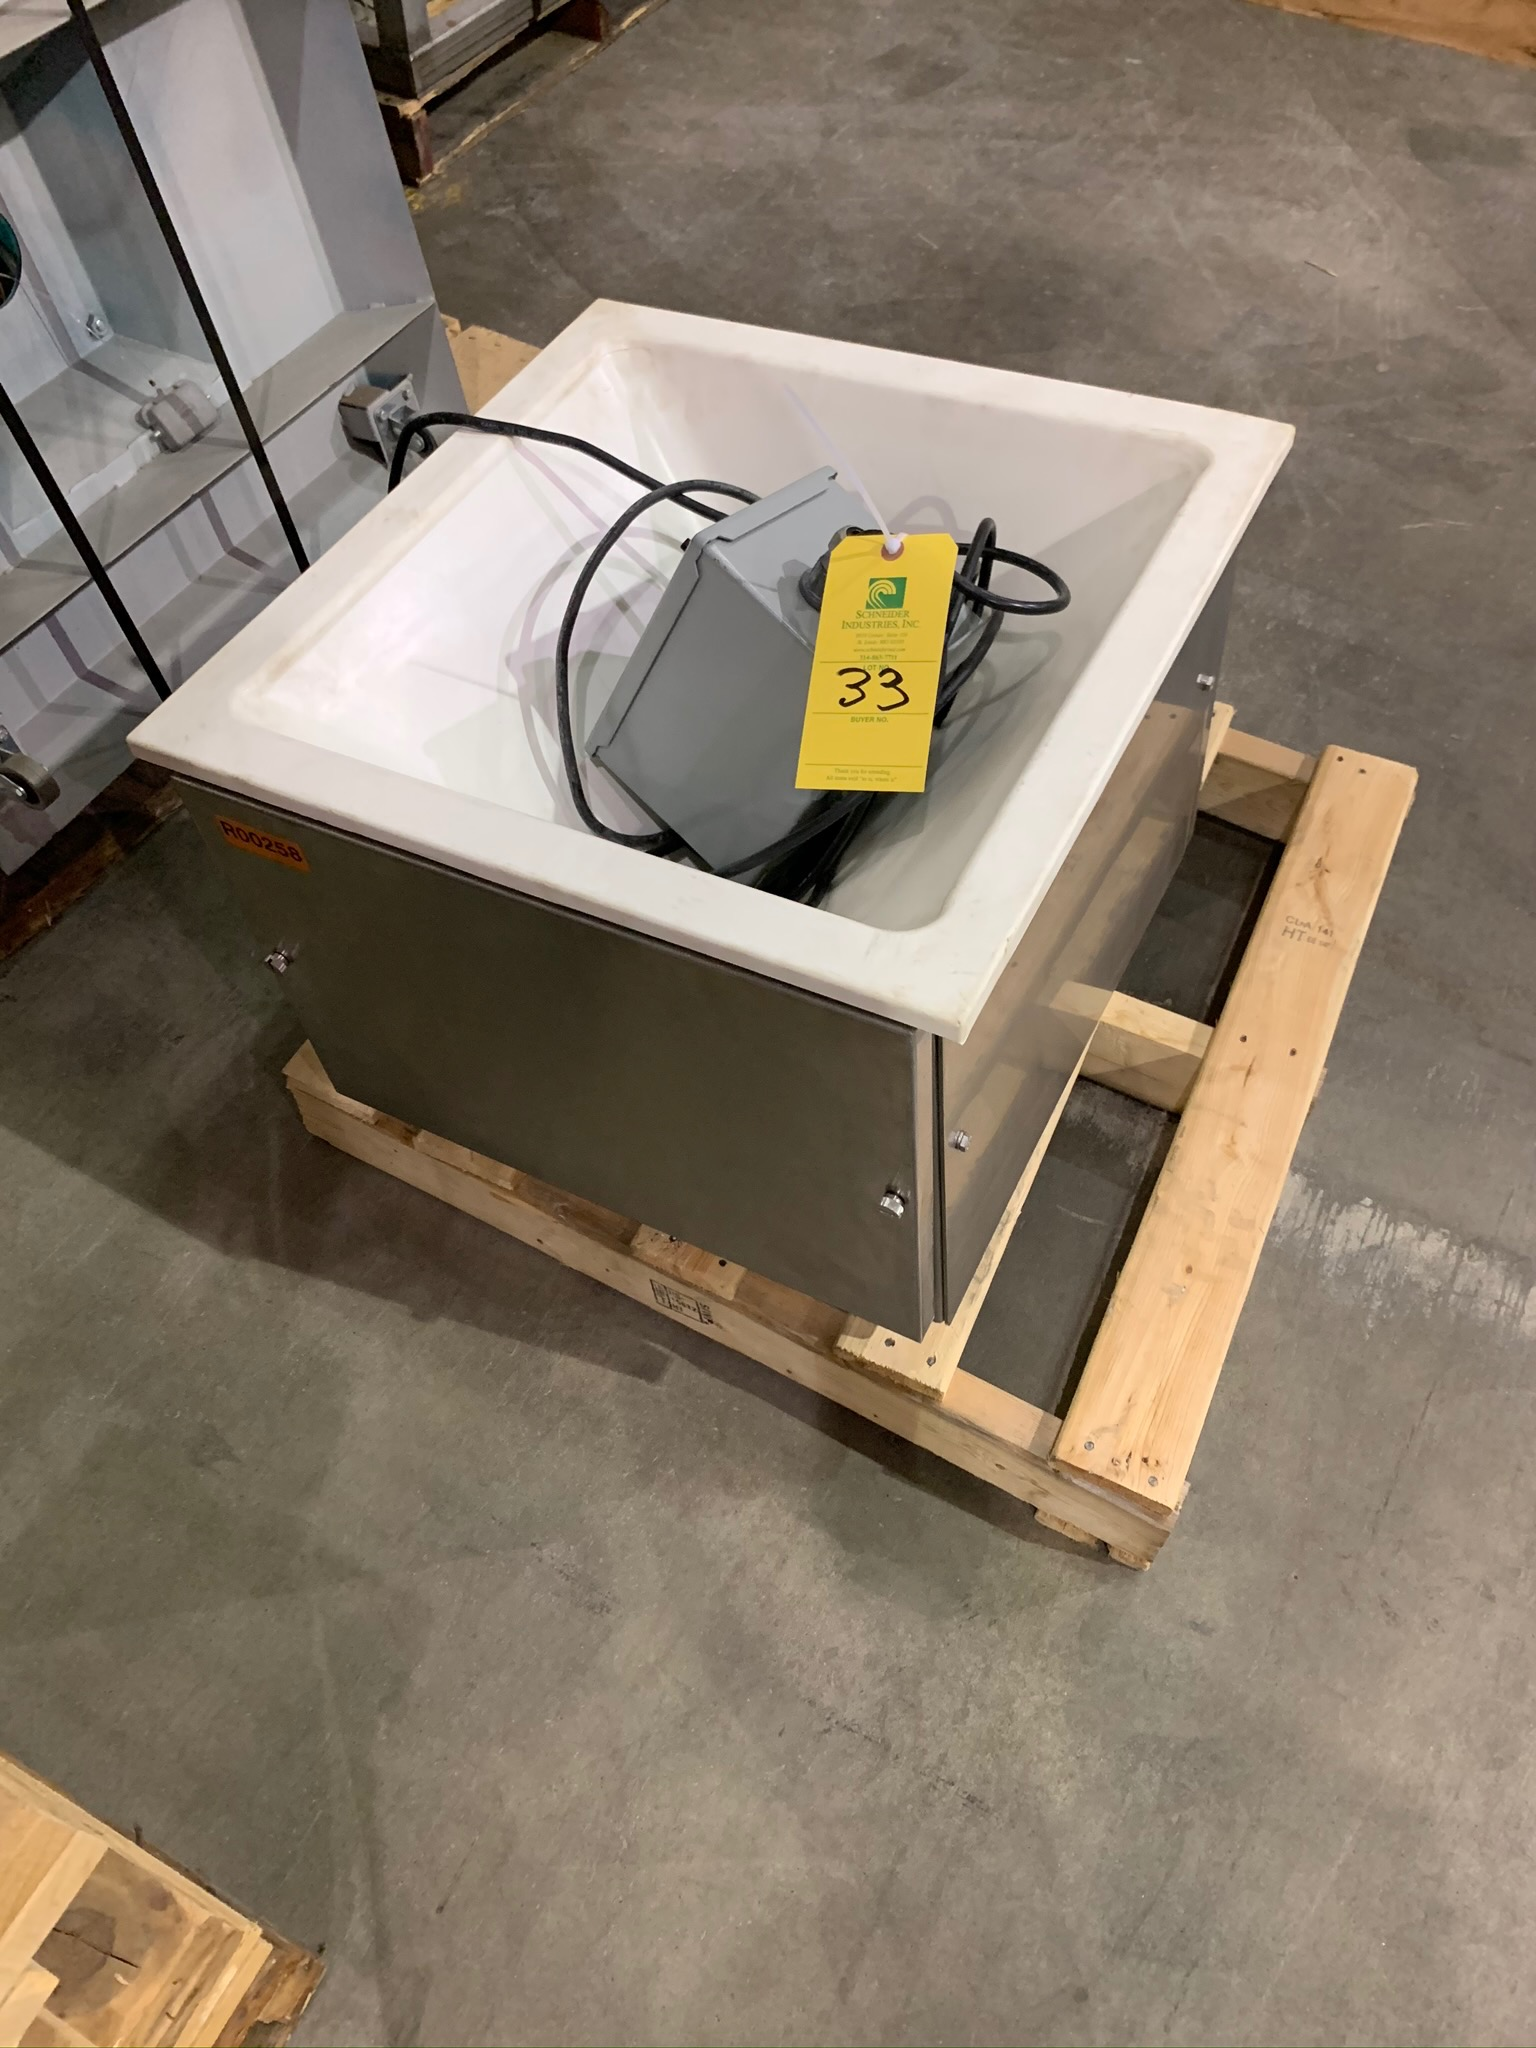 Feeder Box for Accutate Feeder (Rigging Fee - $50) - Image 3 of 3